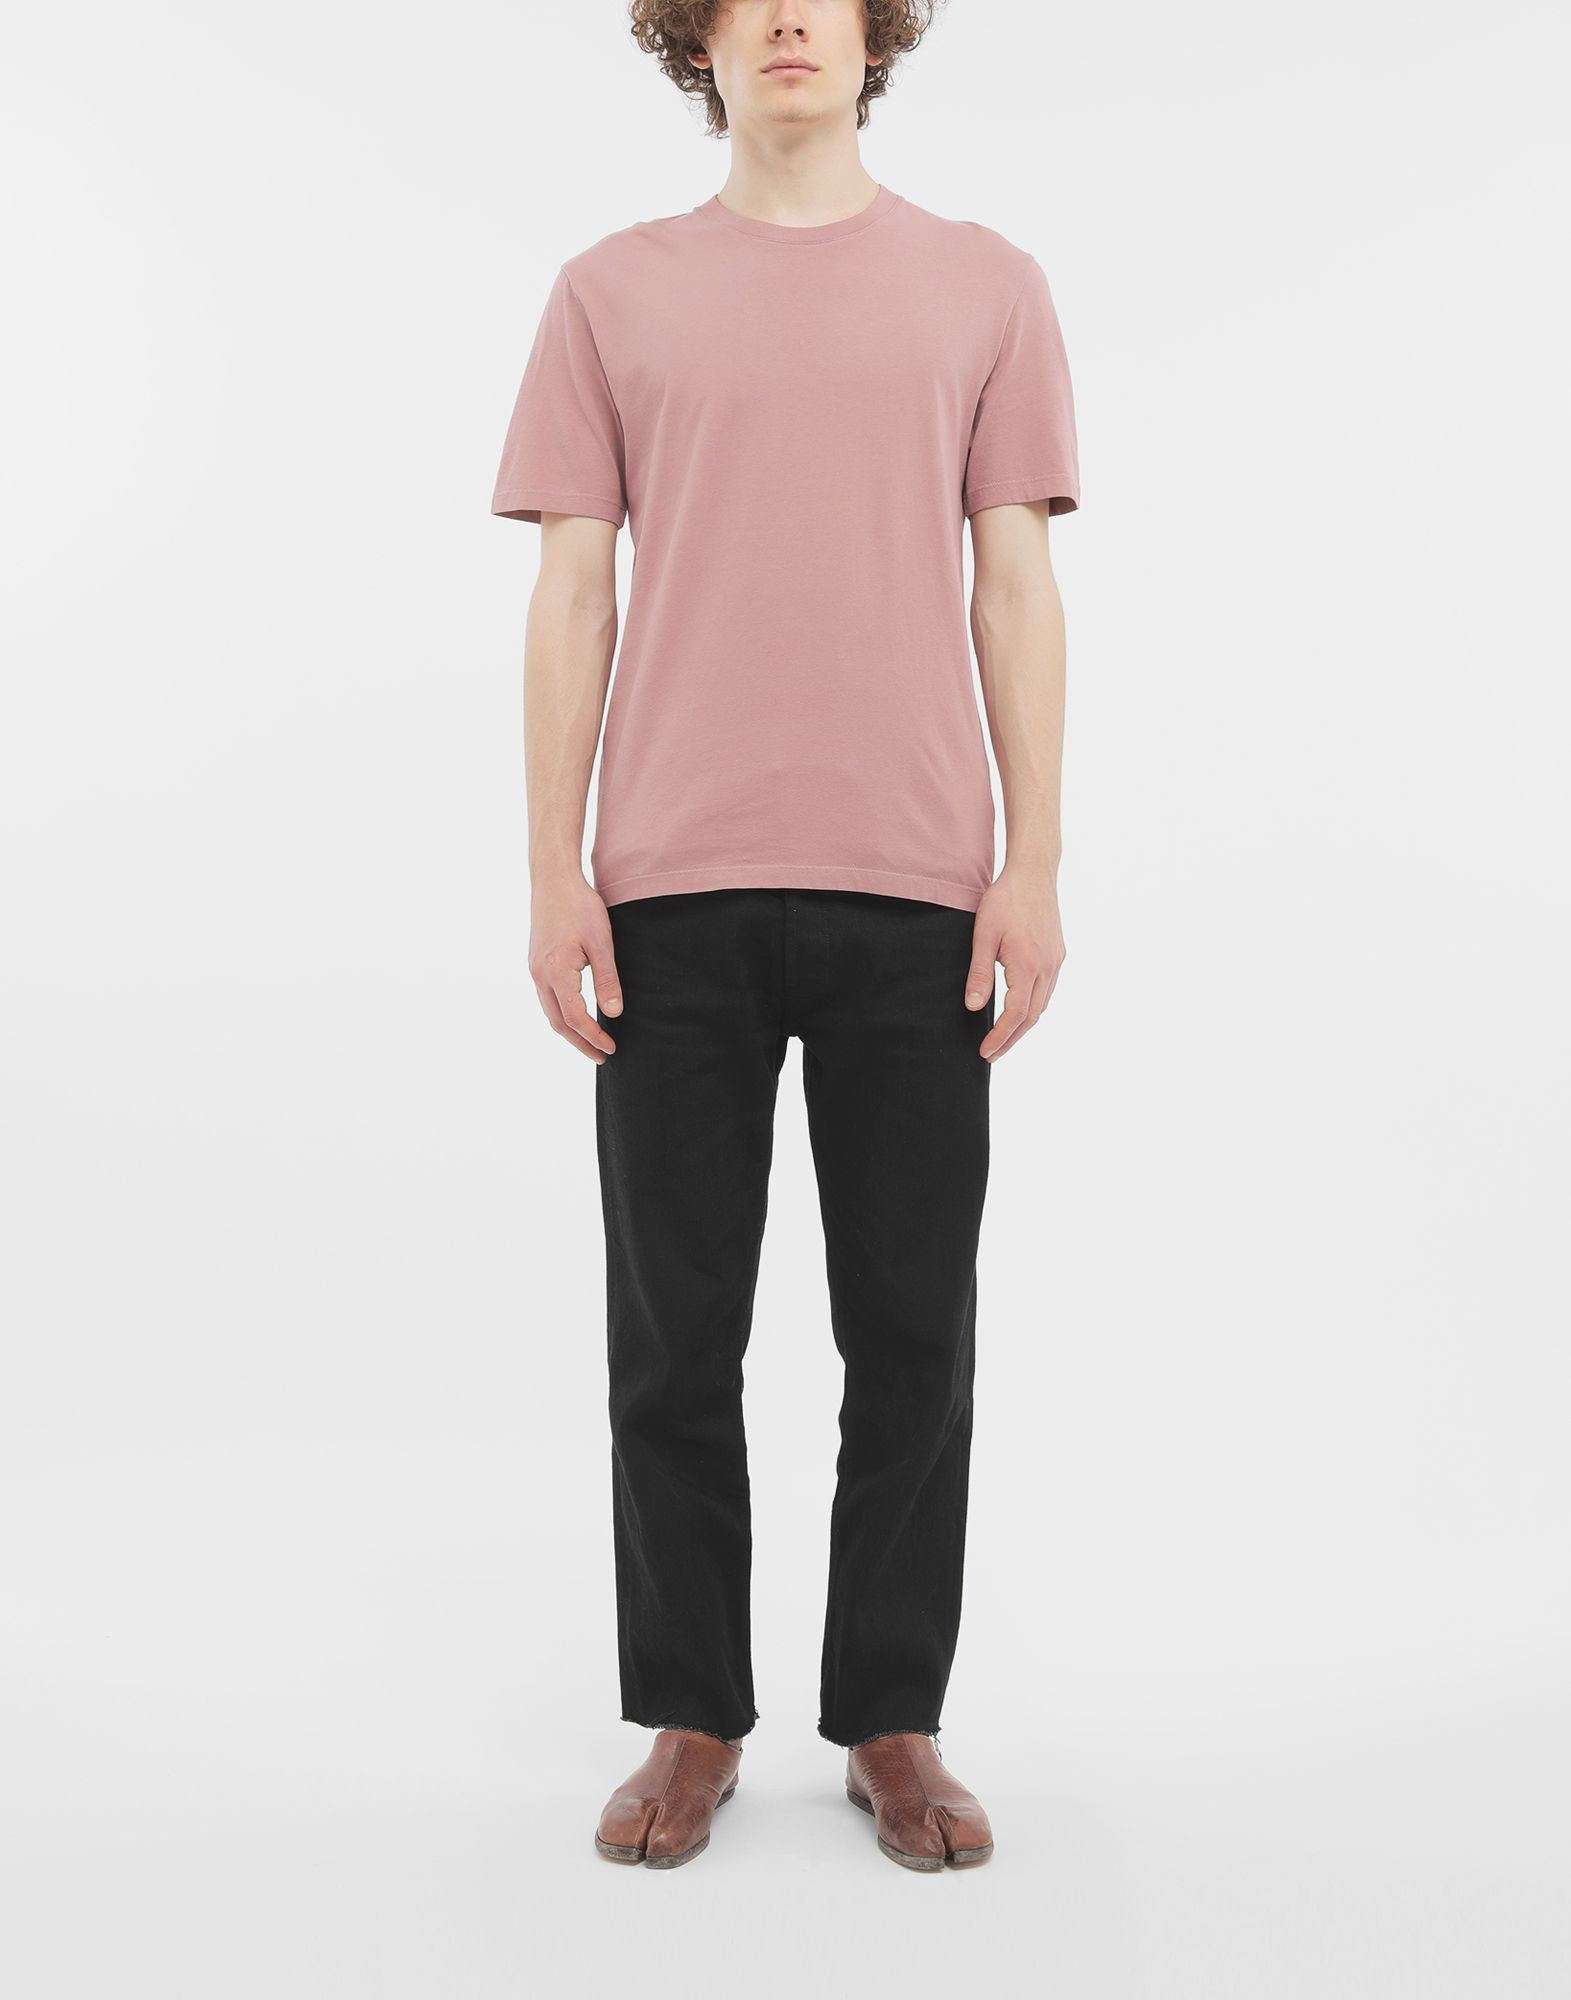 MAISON MARGIELA T-shirt Short sleeve t-shirt Man d